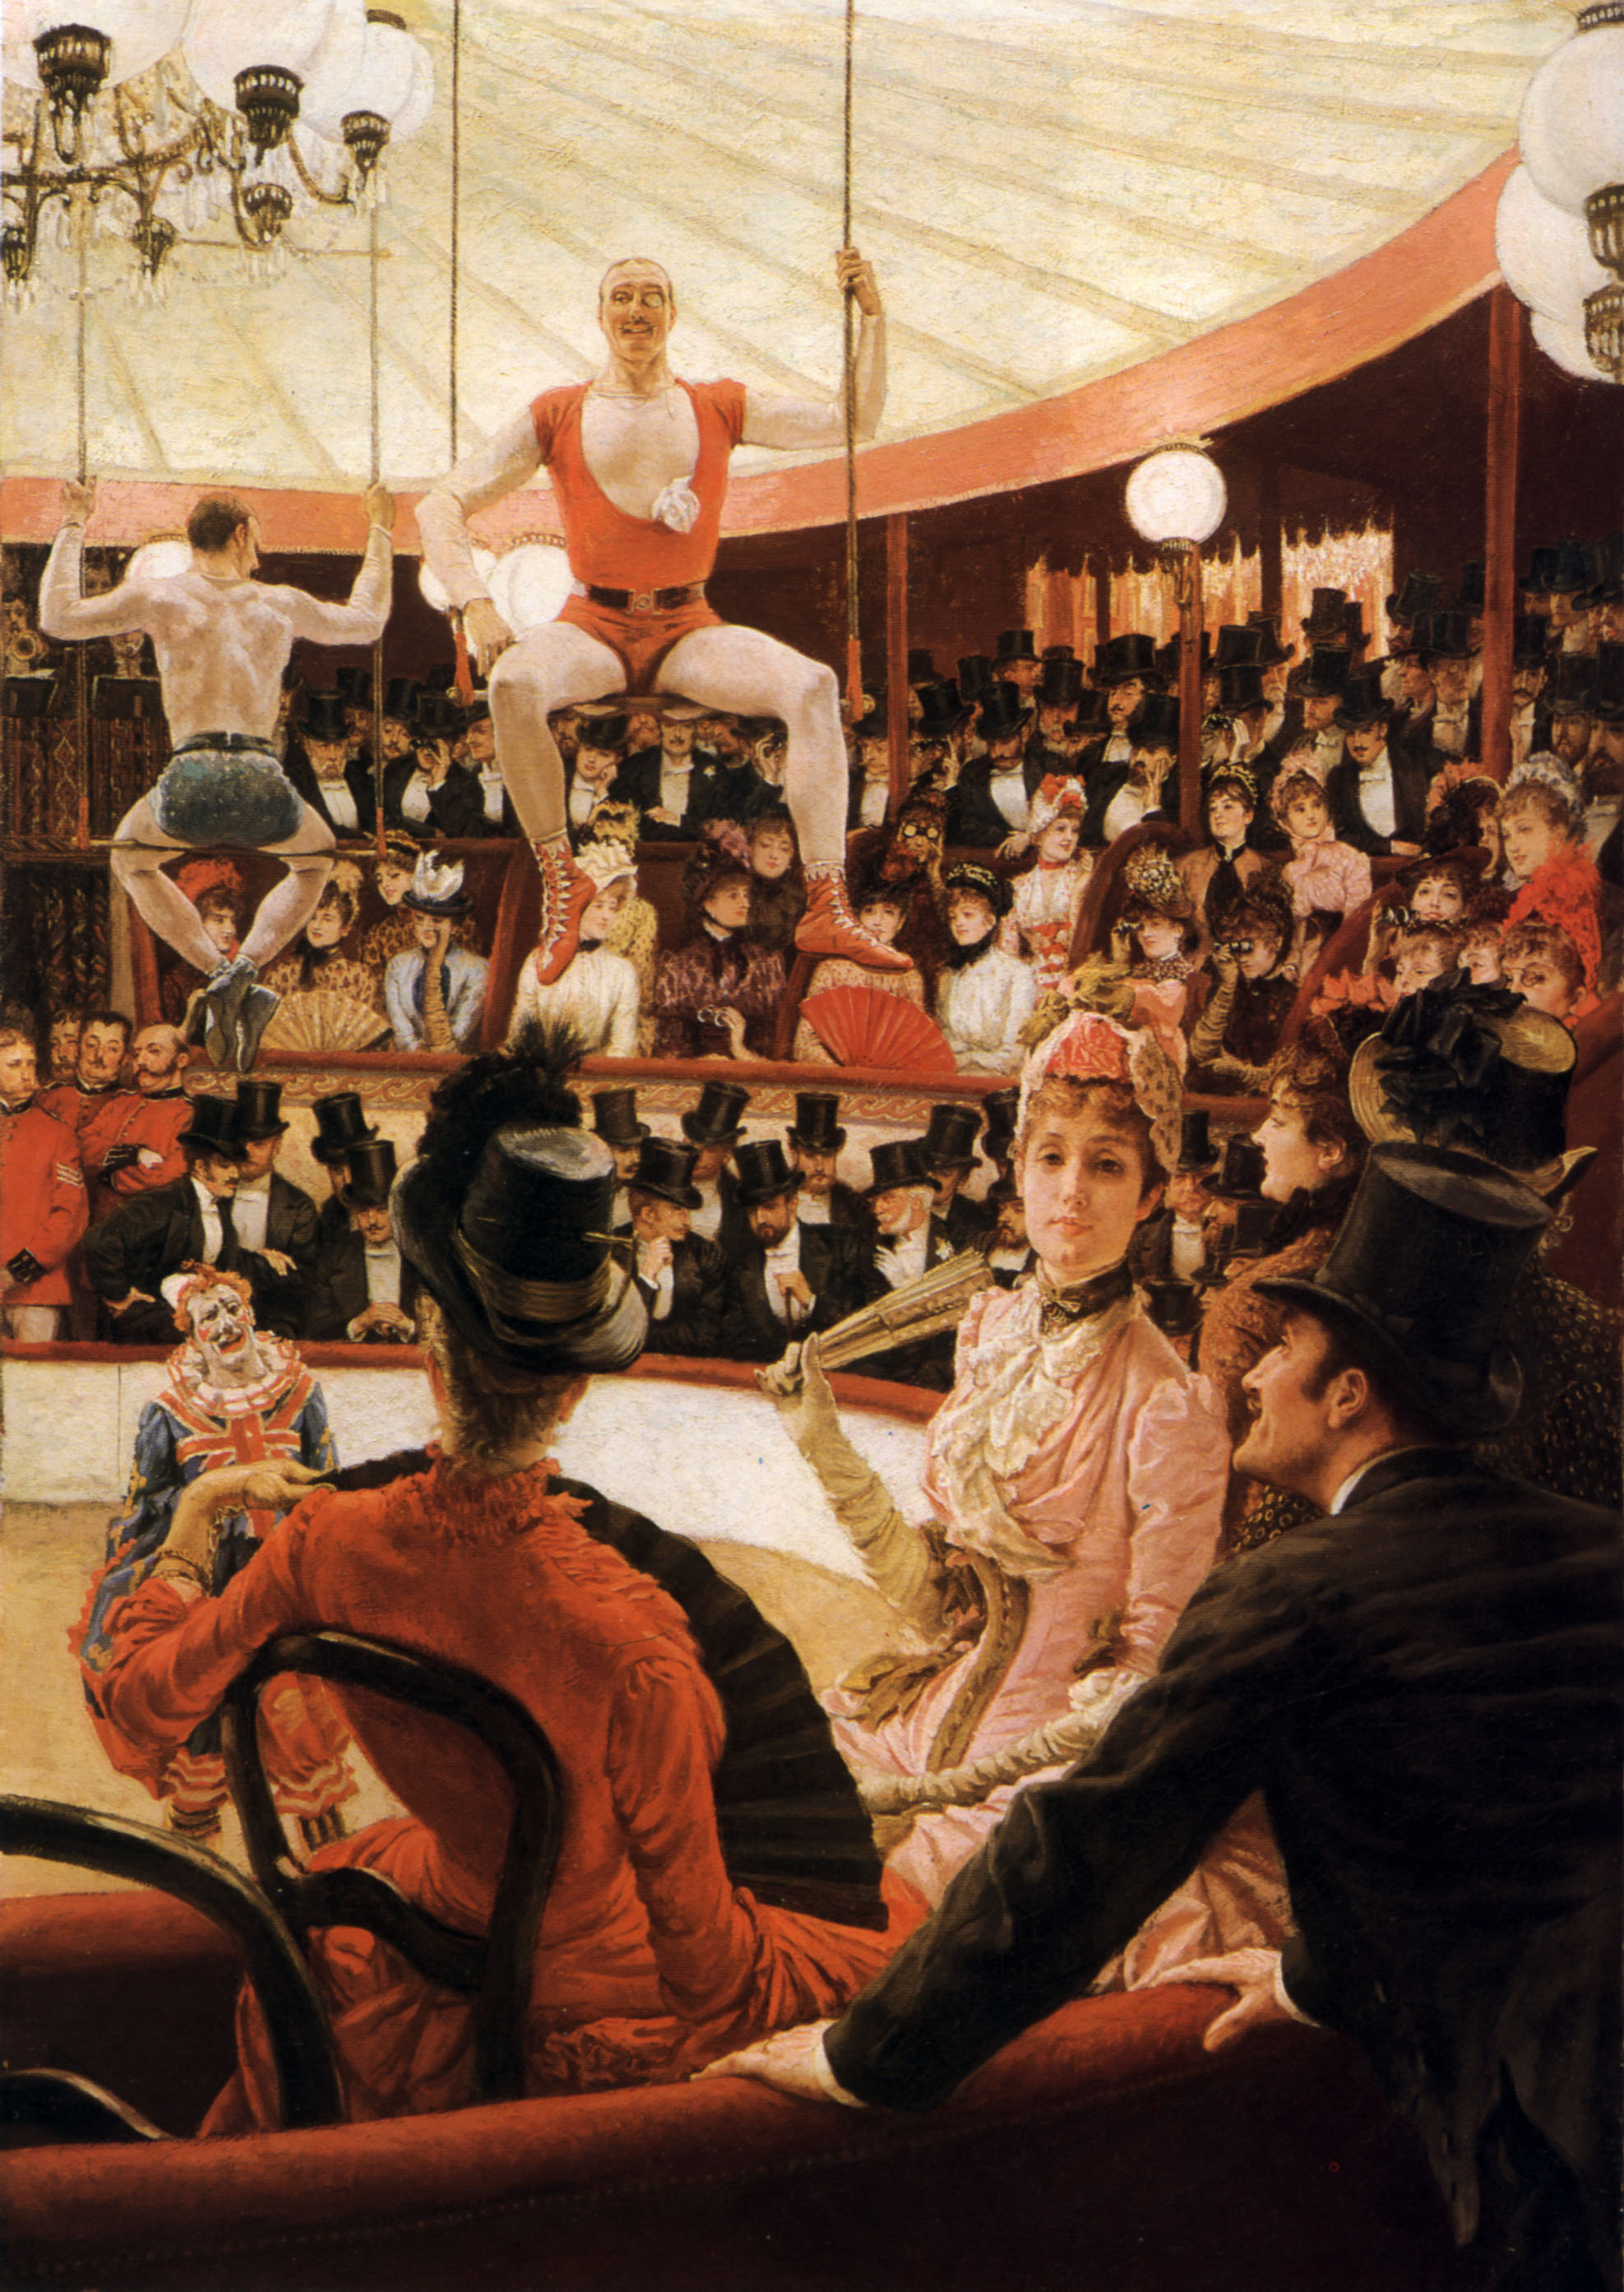 Women of Paris: The Circus Lover (also known as The Amateur Circus, 1885), by James Tissot. Oil on canvas, 58 by 40 in. (147.3 by 101.6 cm). Museum of Fine Arts, Boston, Massachusetts, U.S.A. (Photo: Wikimedia.org)